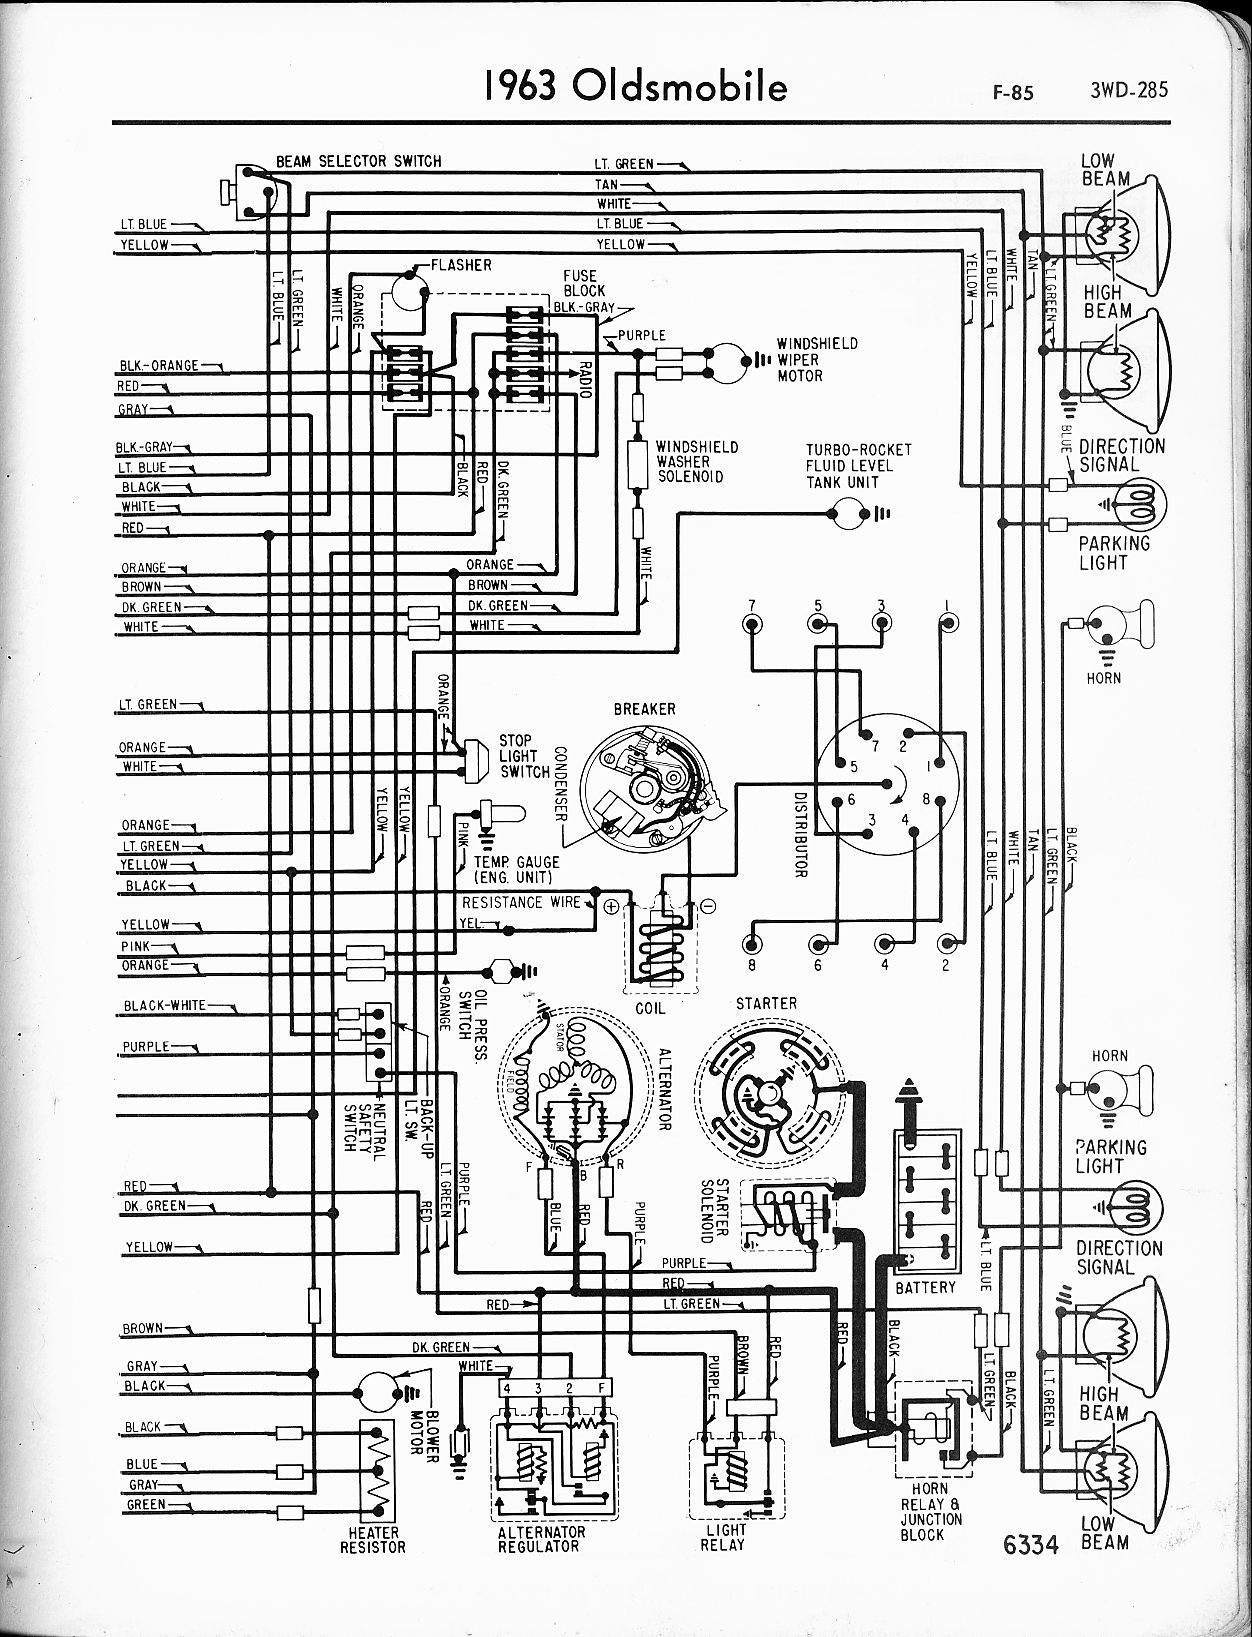 1966 olds 98 generator wiring diagram schematic ideas 1953 pontiac wiring diagram wiring